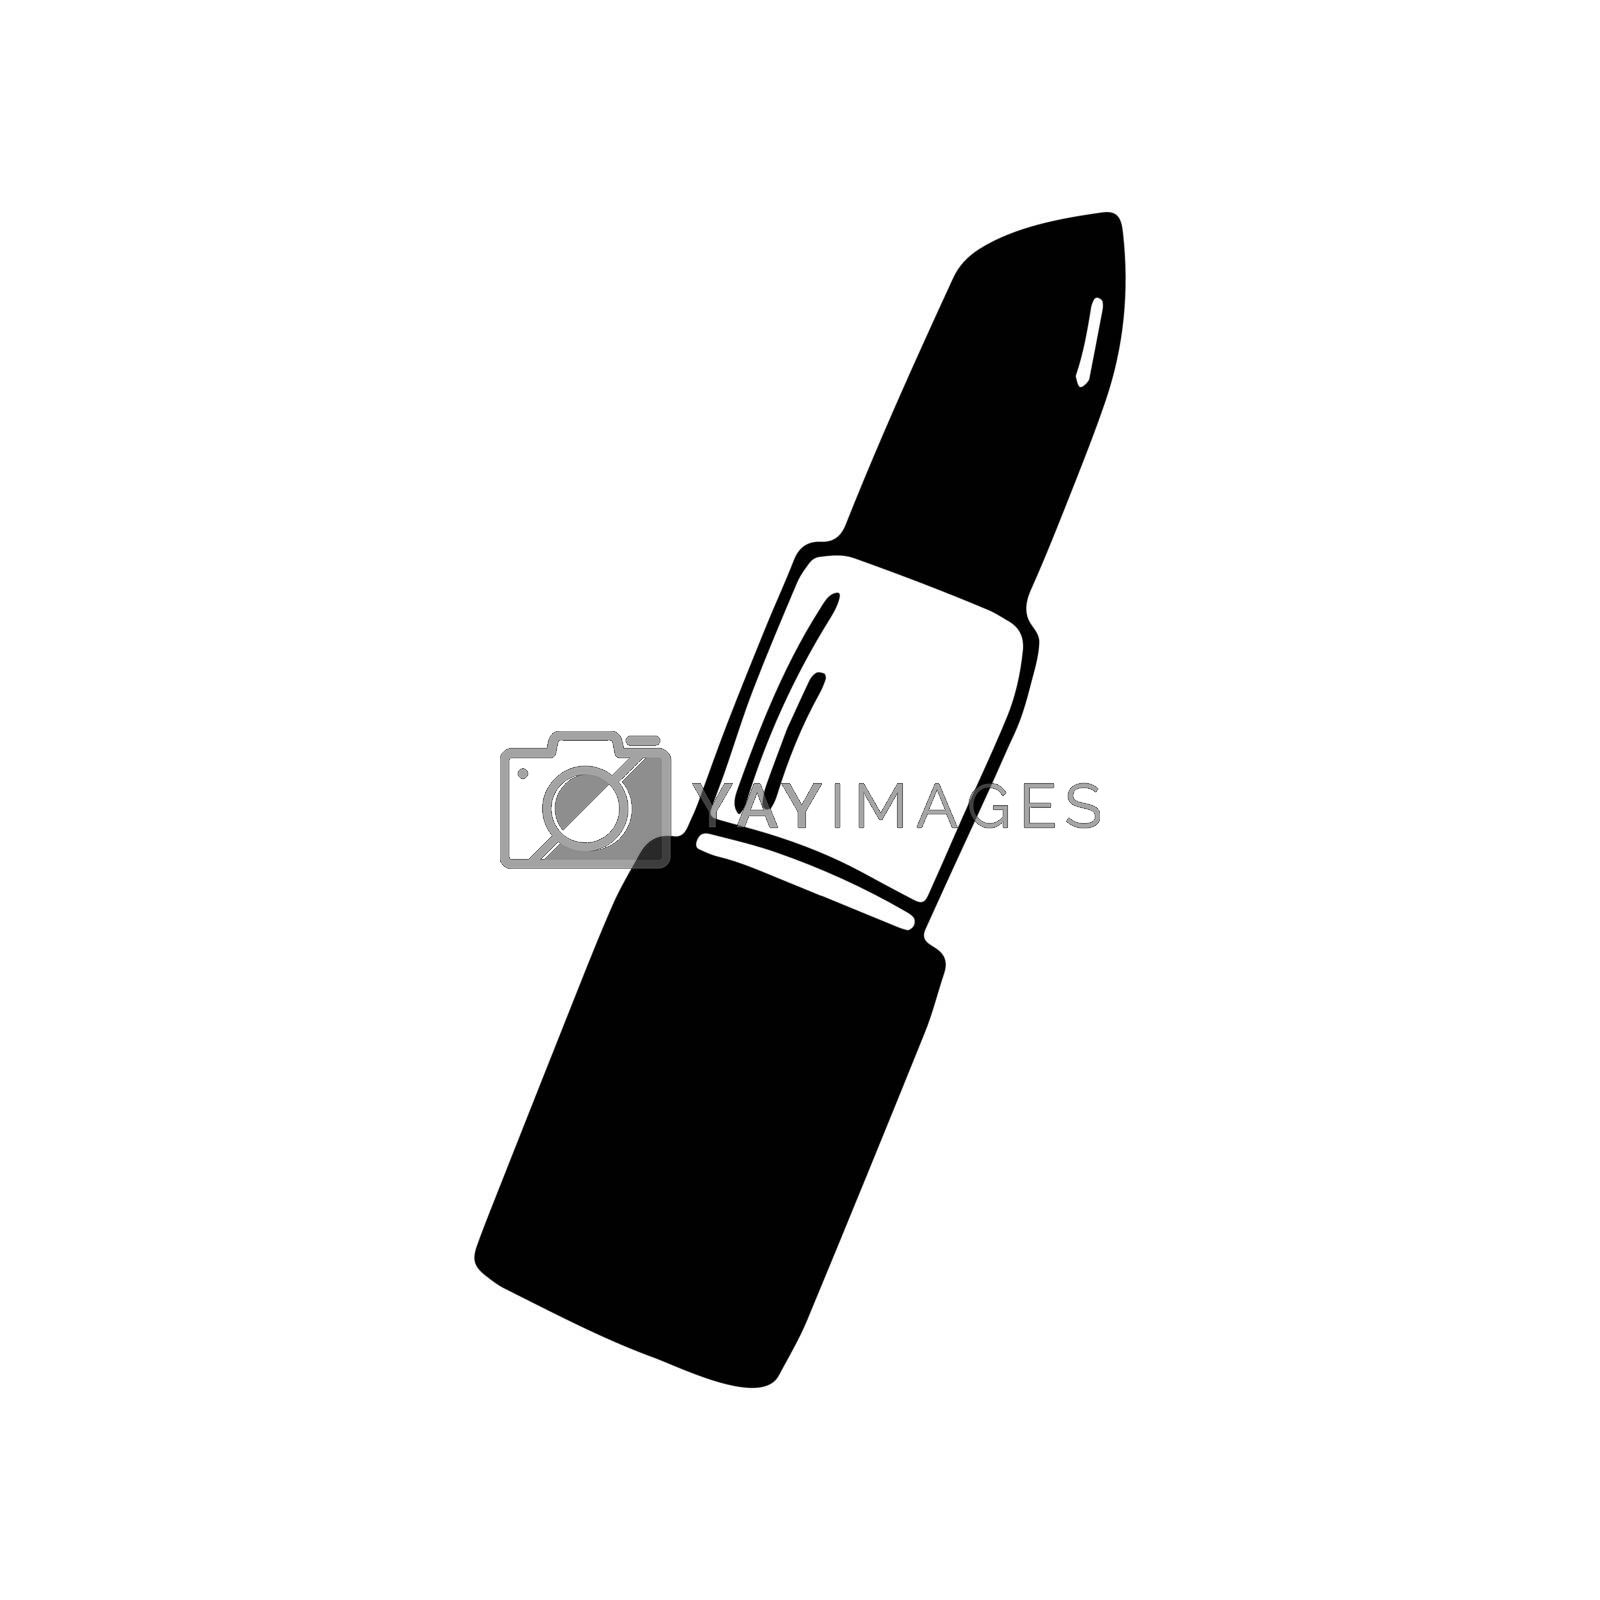 Cute hand drawn doodle lipstick icon. Isolated on white. Vector stock illustration.